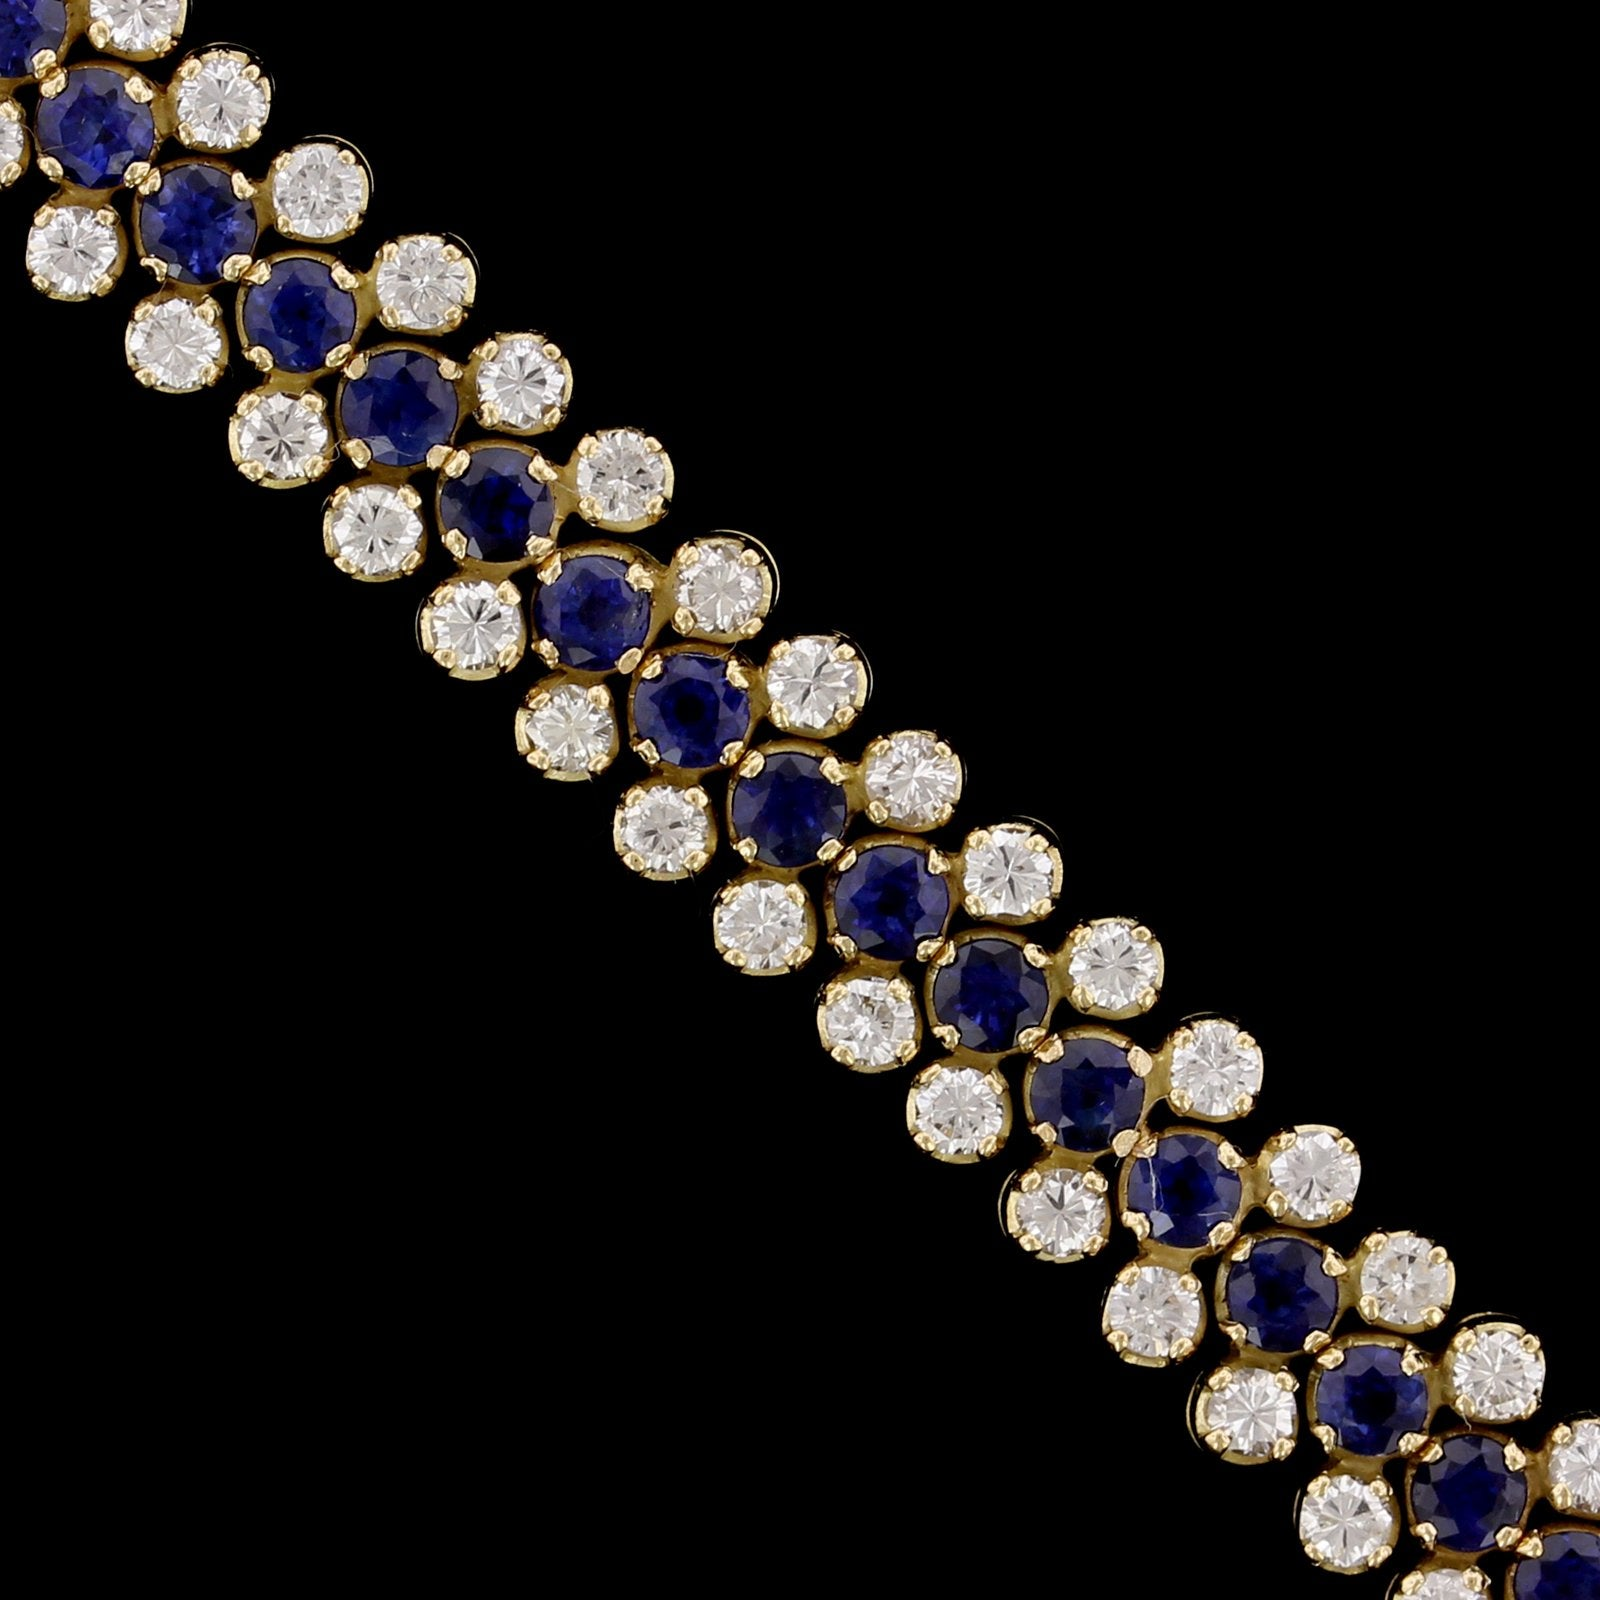 18K Yellow Gold Estate Sapphire and Diamond Bracelet